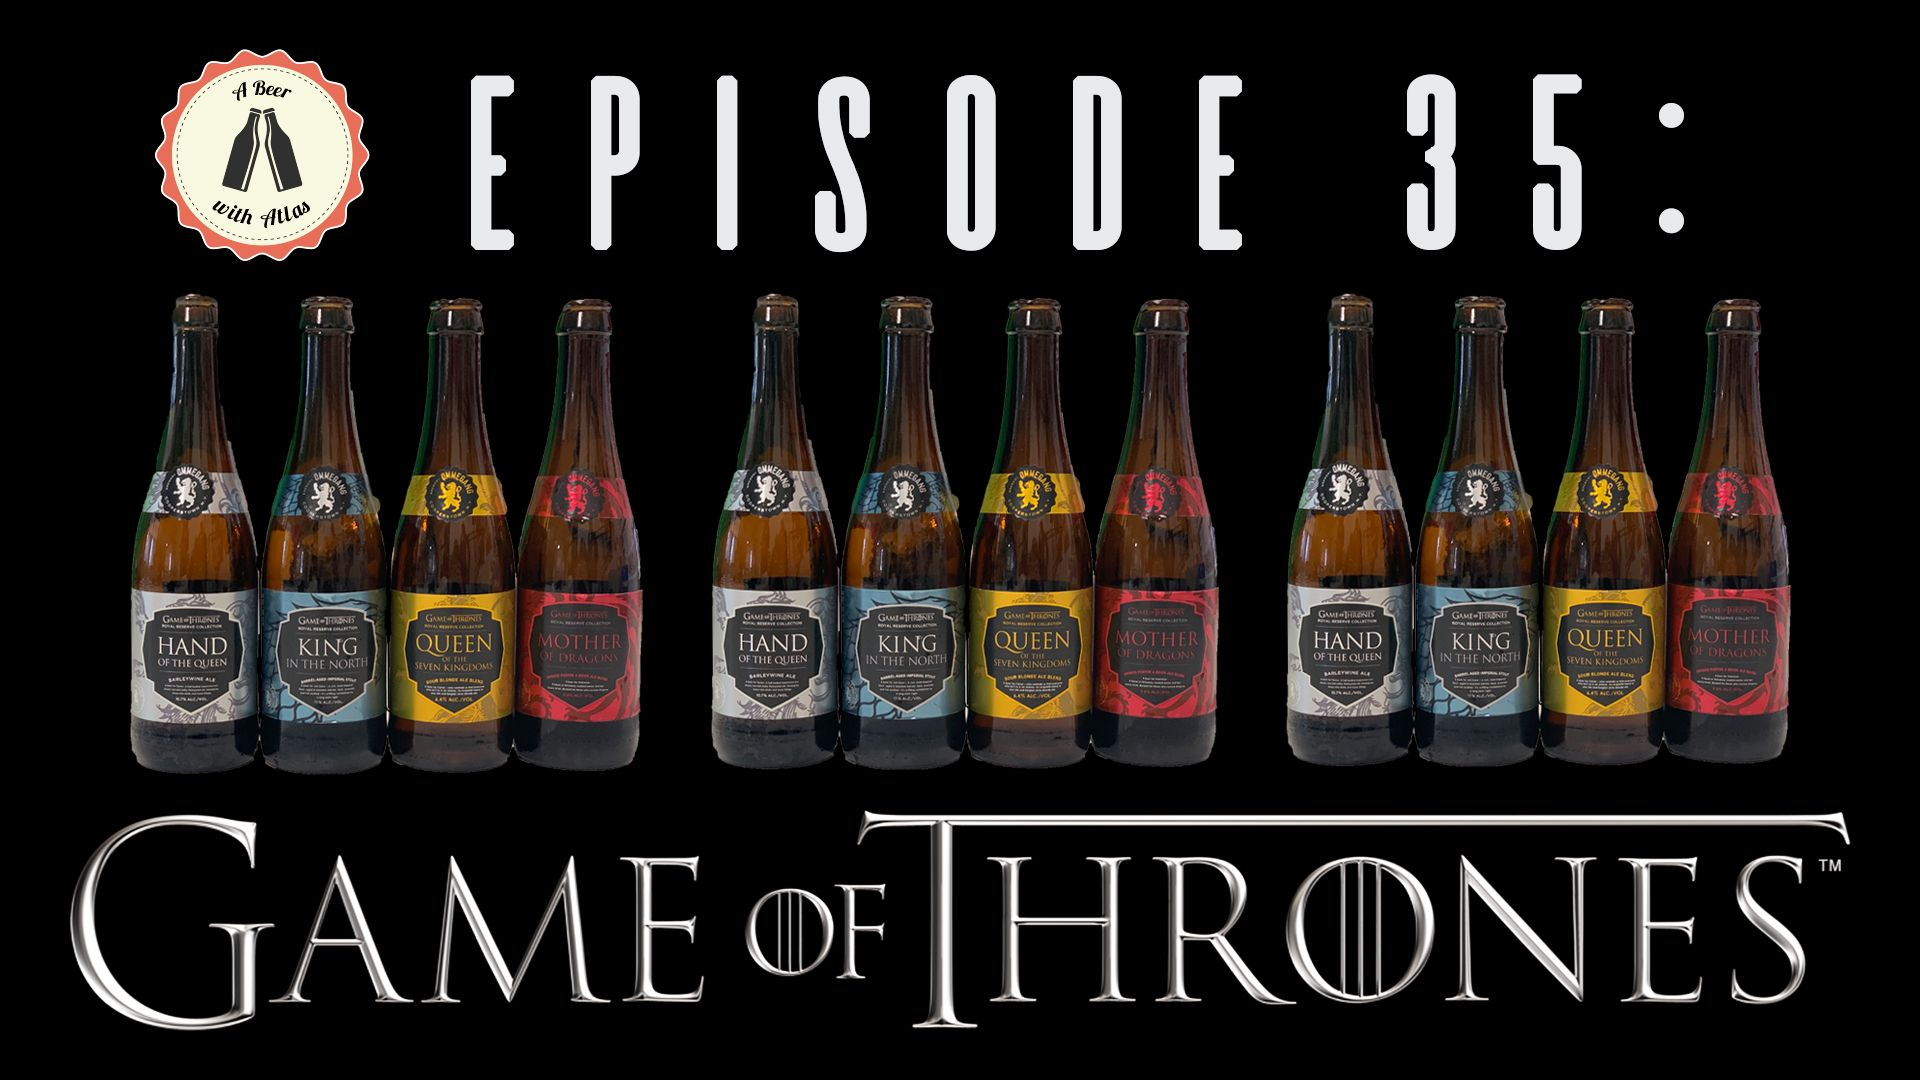 This week, we drink 4 different beers from Ommegang